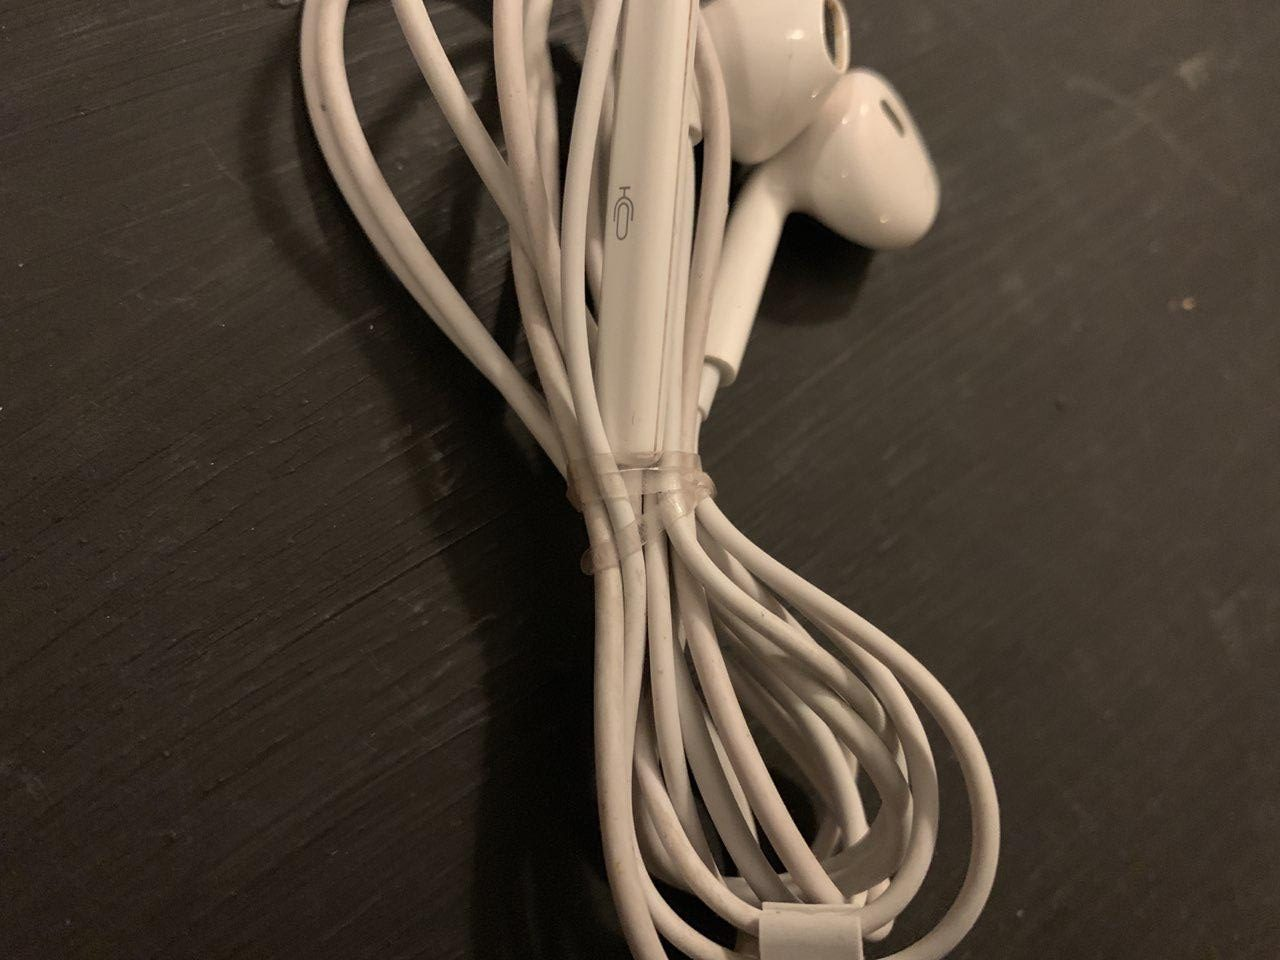 Transparent rubber hairband to tidy up cables & color gels